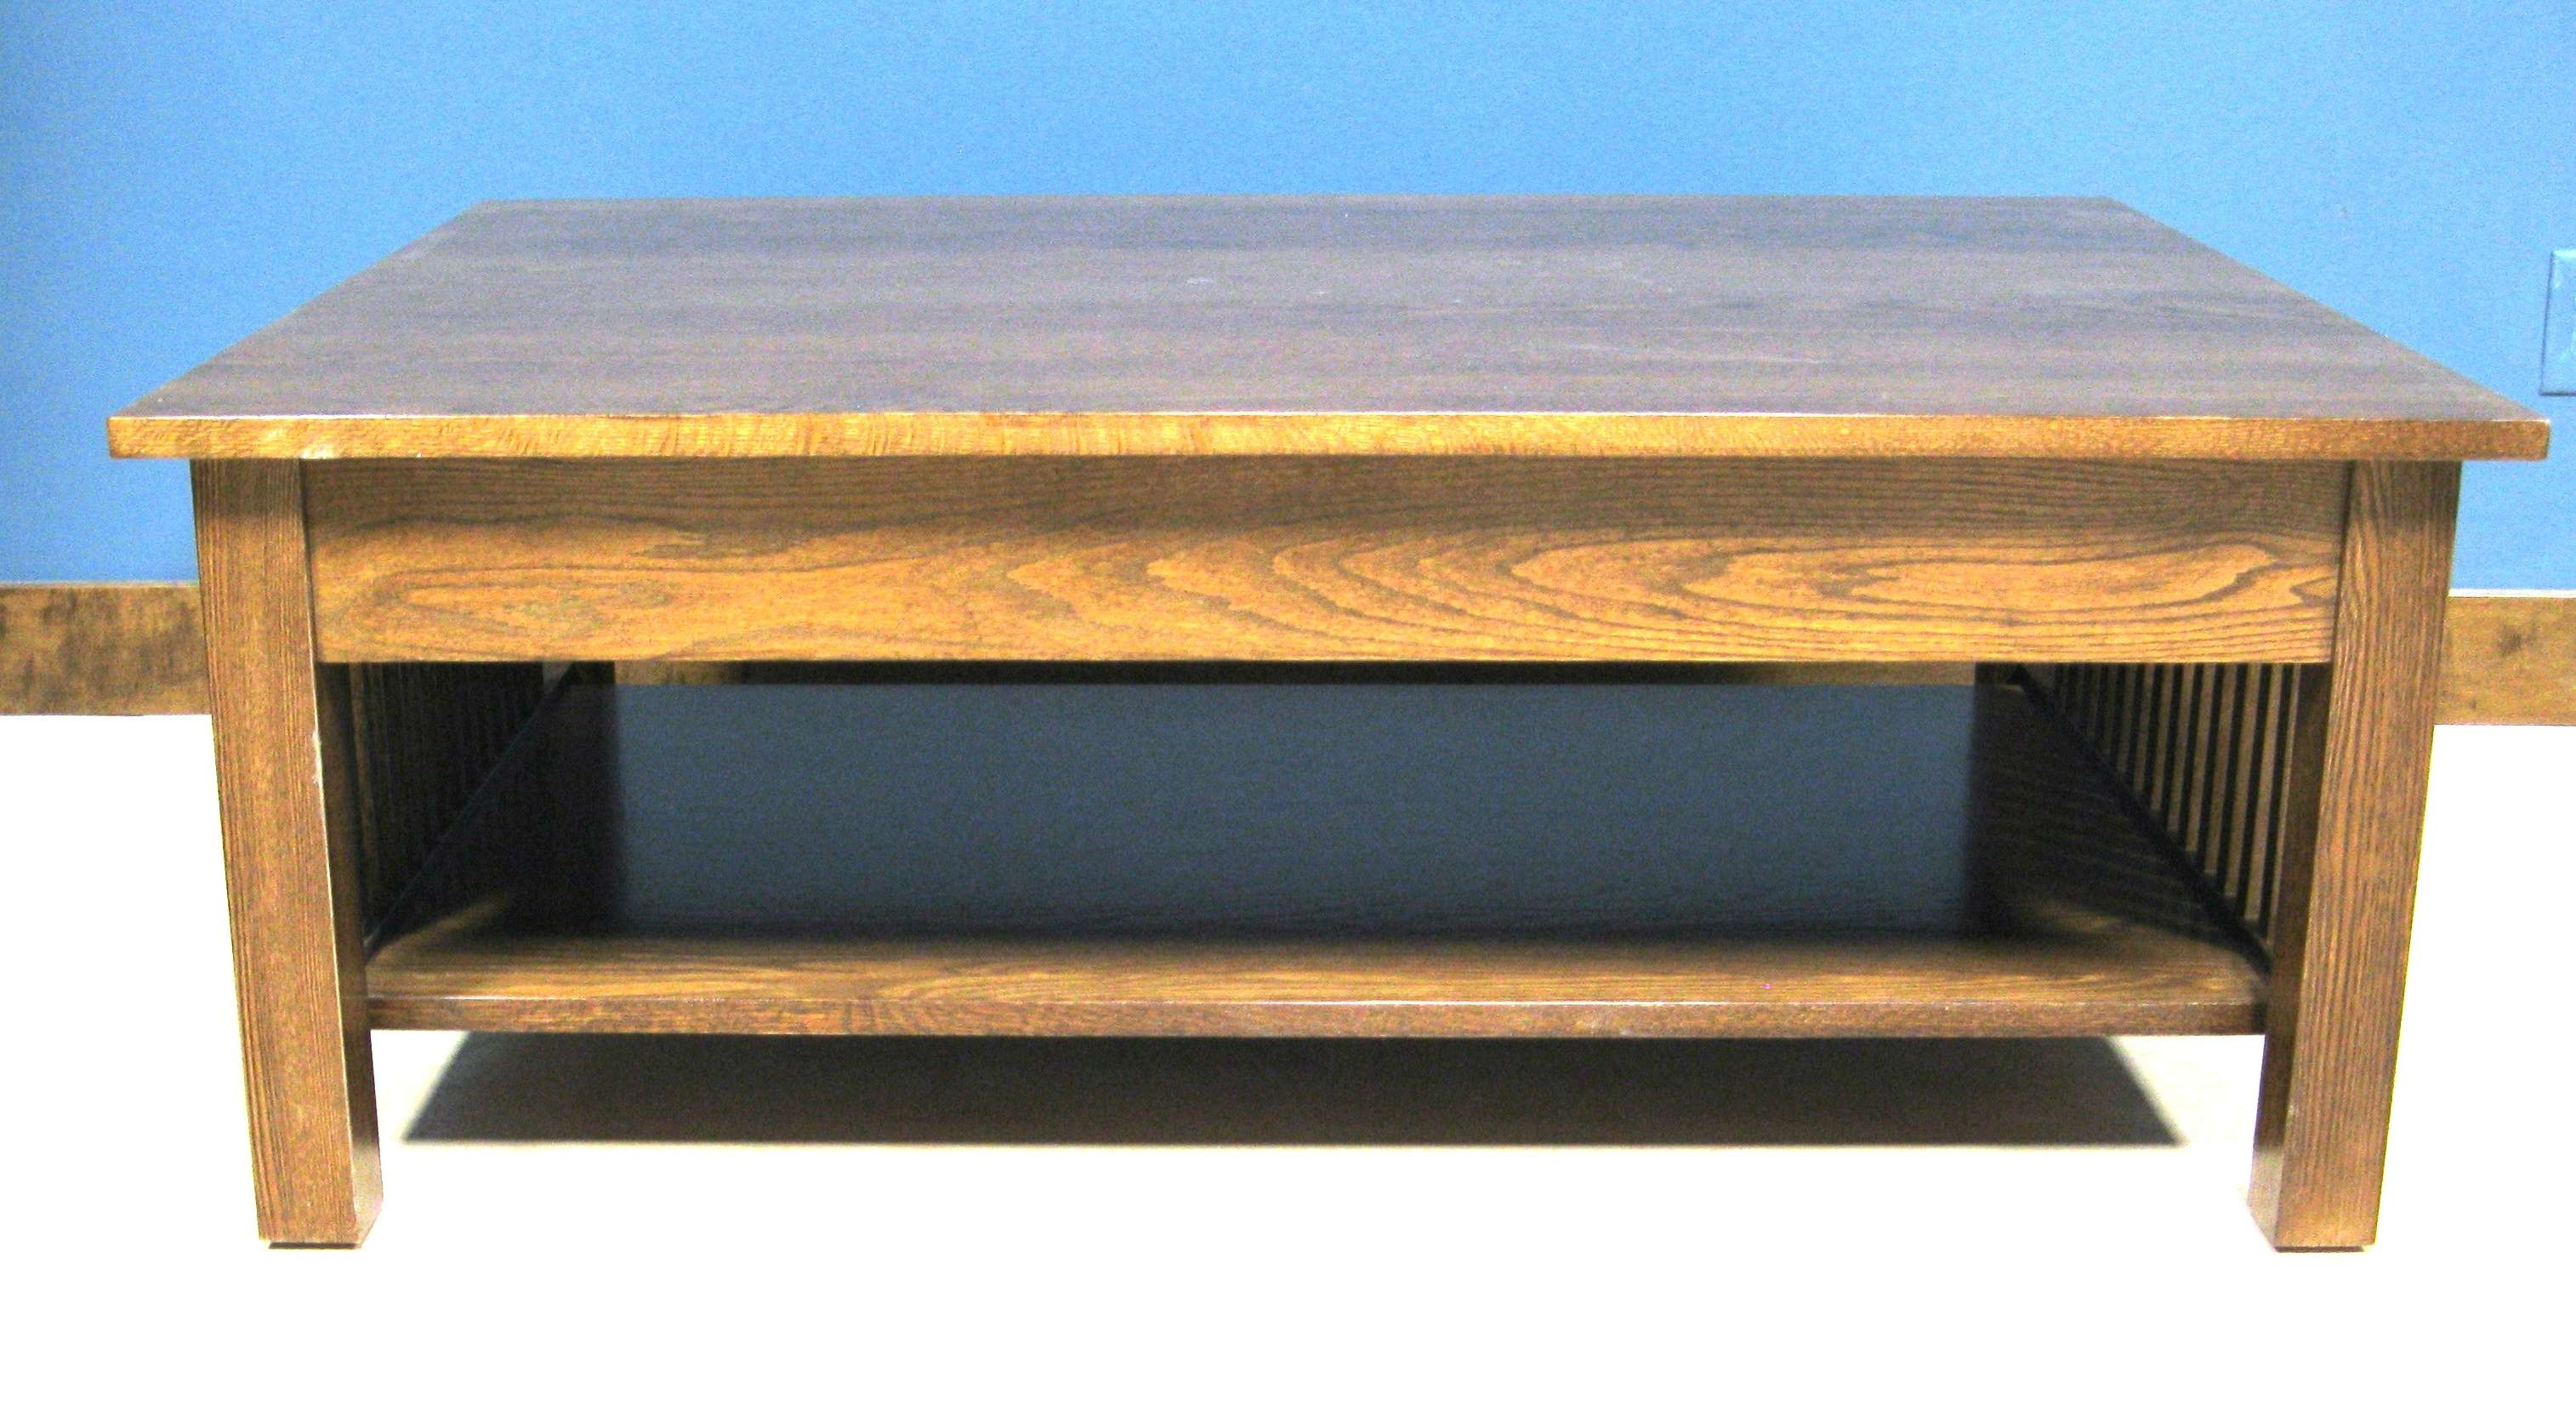 Newest Square Oak Coffee Tables Inside Square Coffee Table W/ Drawer (View 13 of 20)